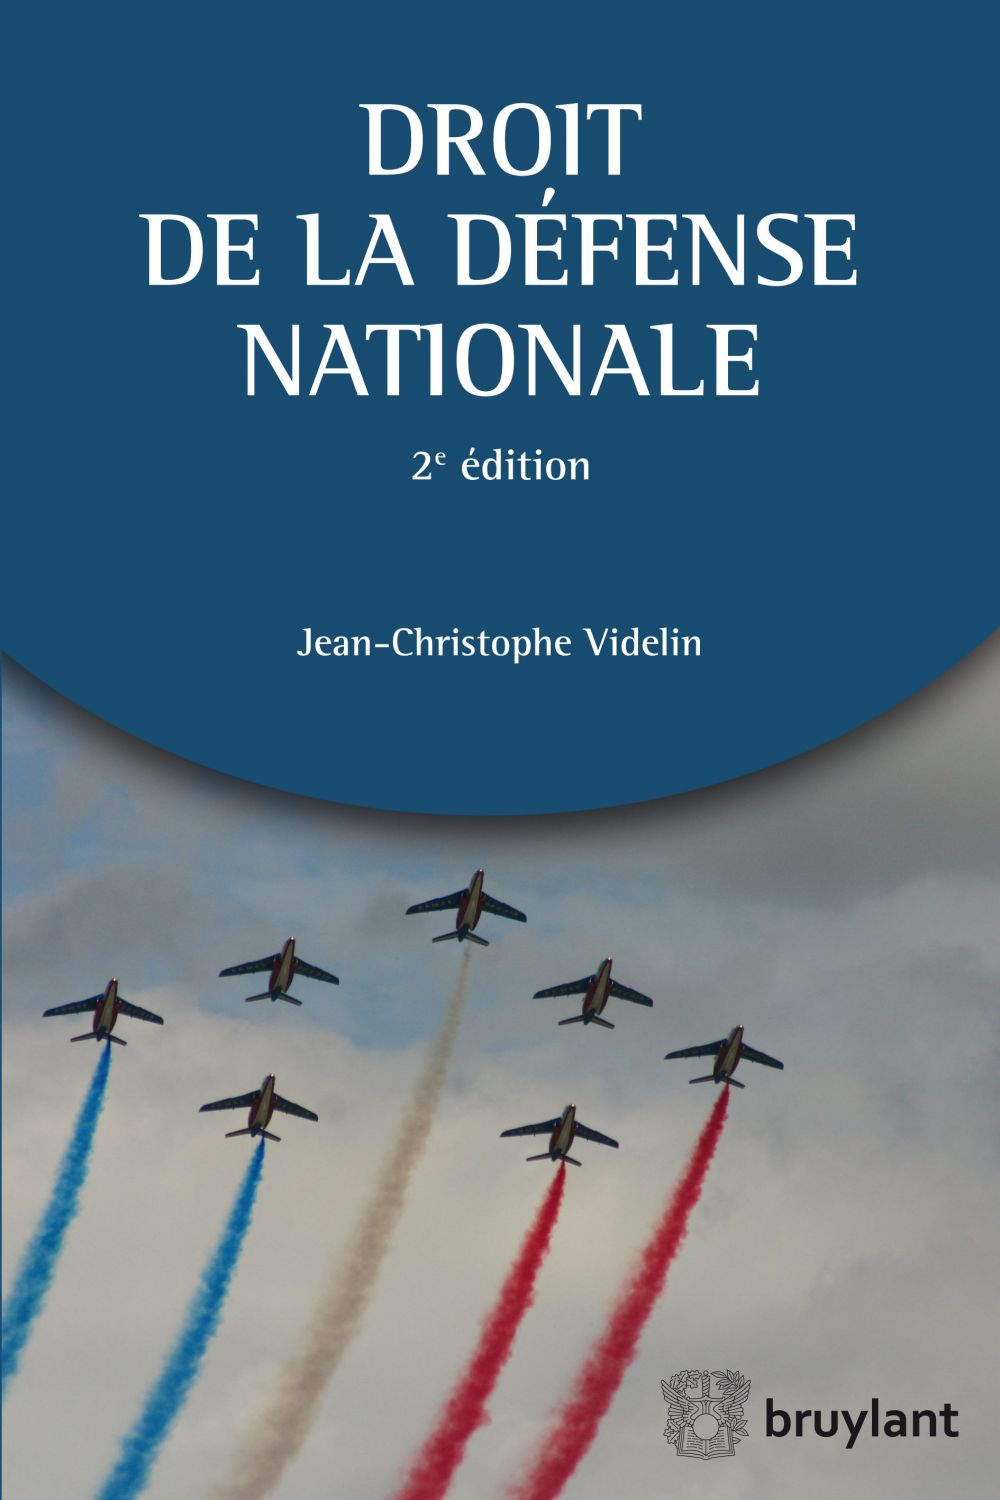 Droit de la défense nationale